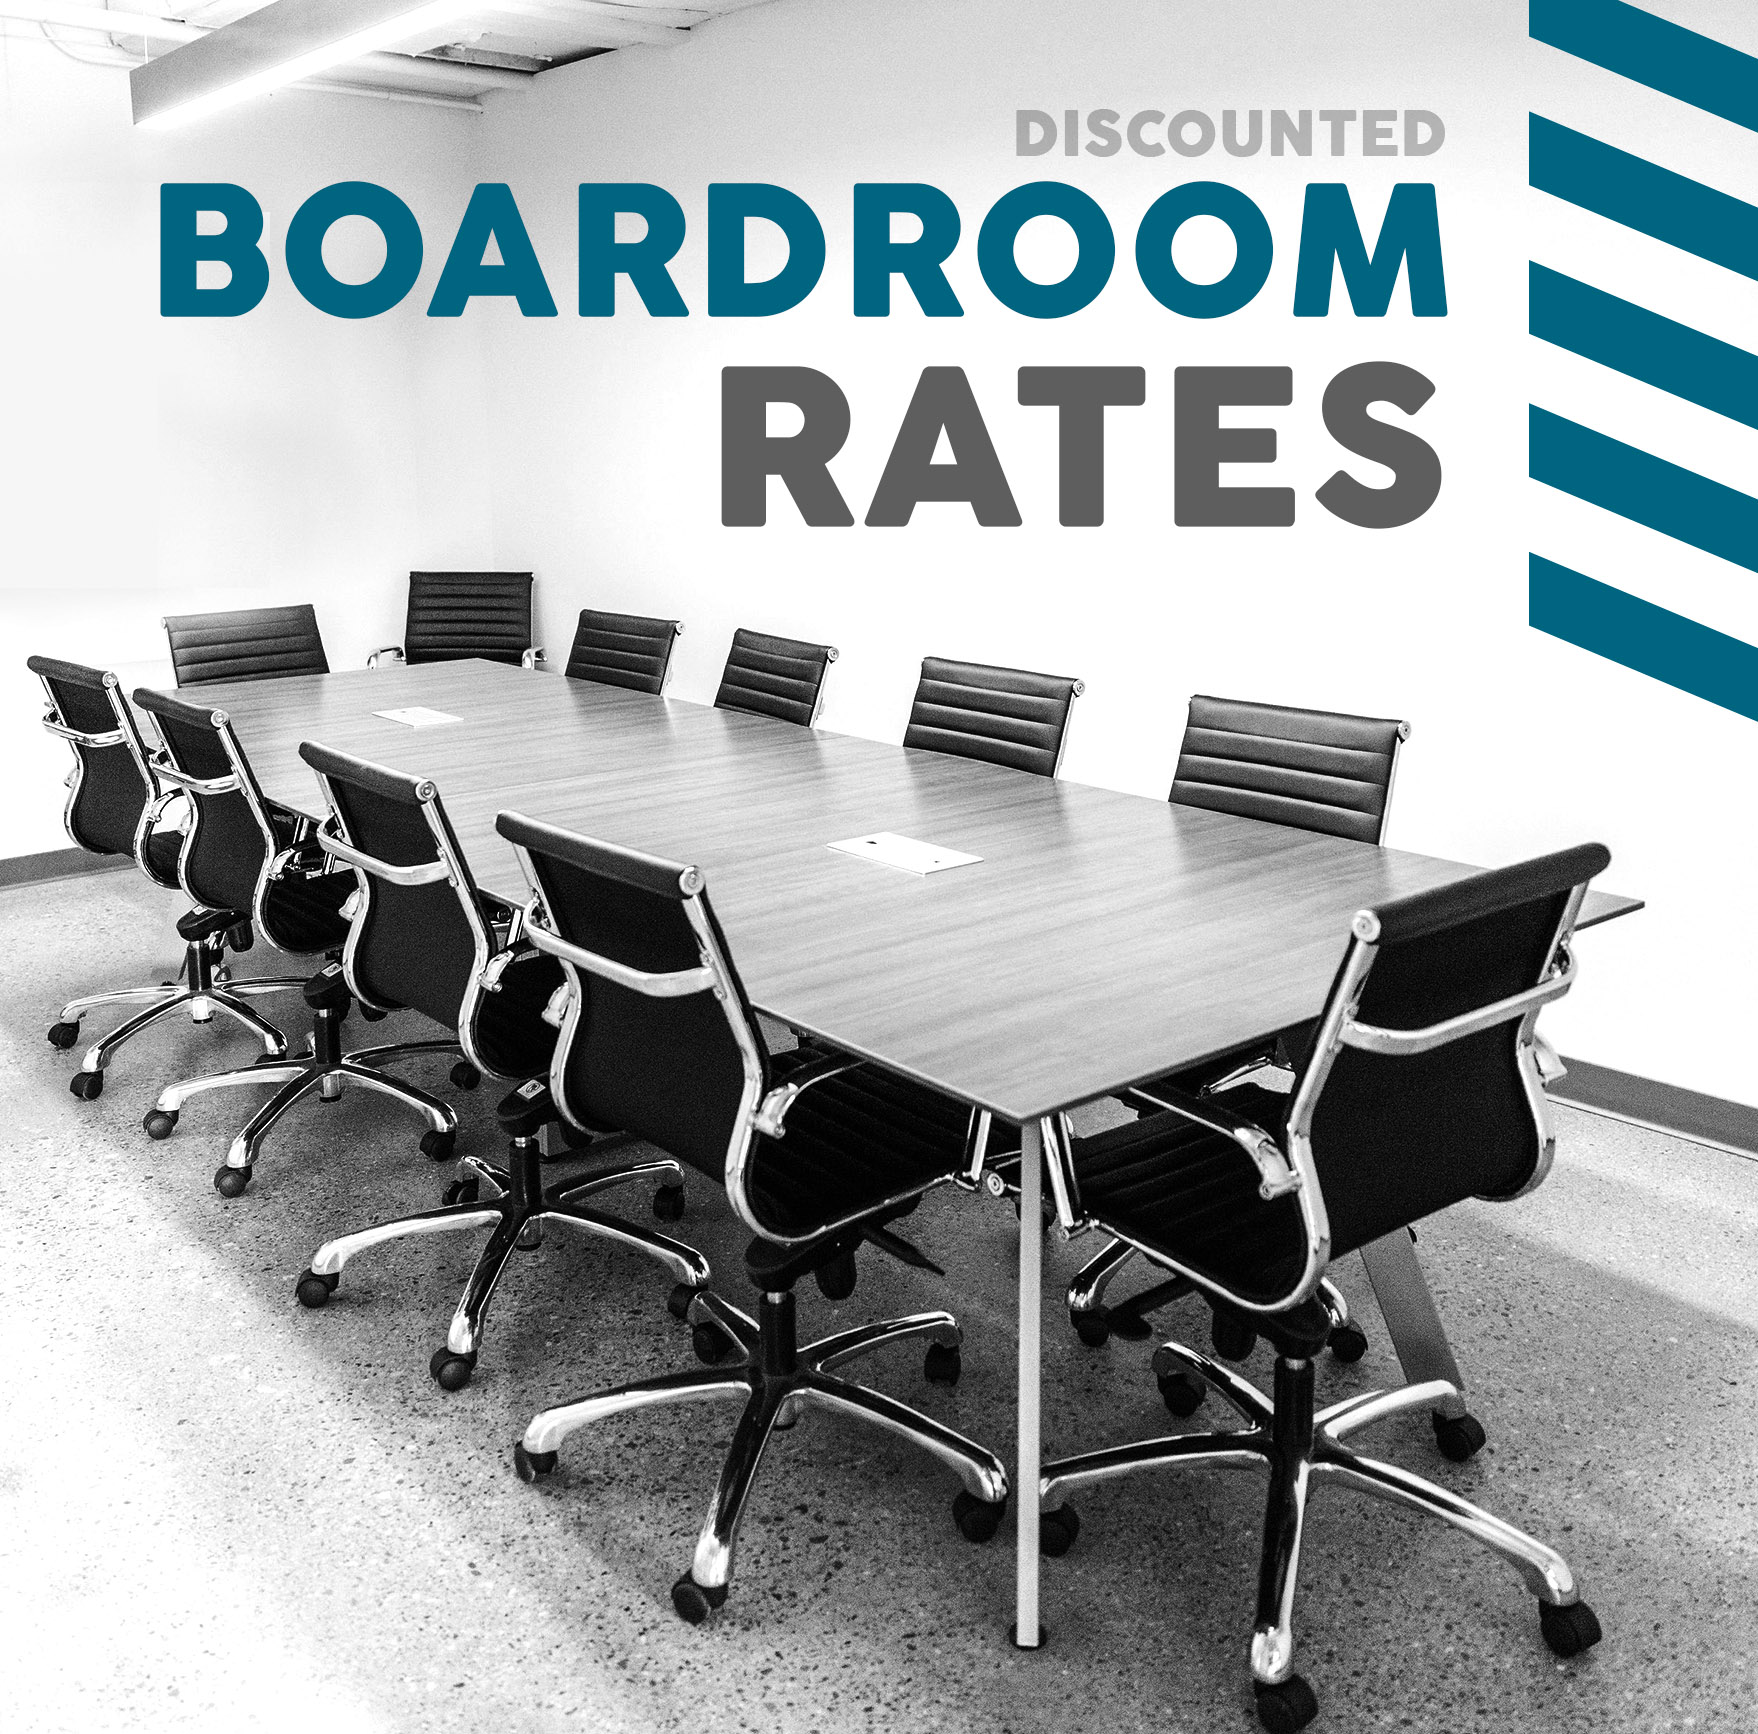 Discounted Boardroom Rates.jpg